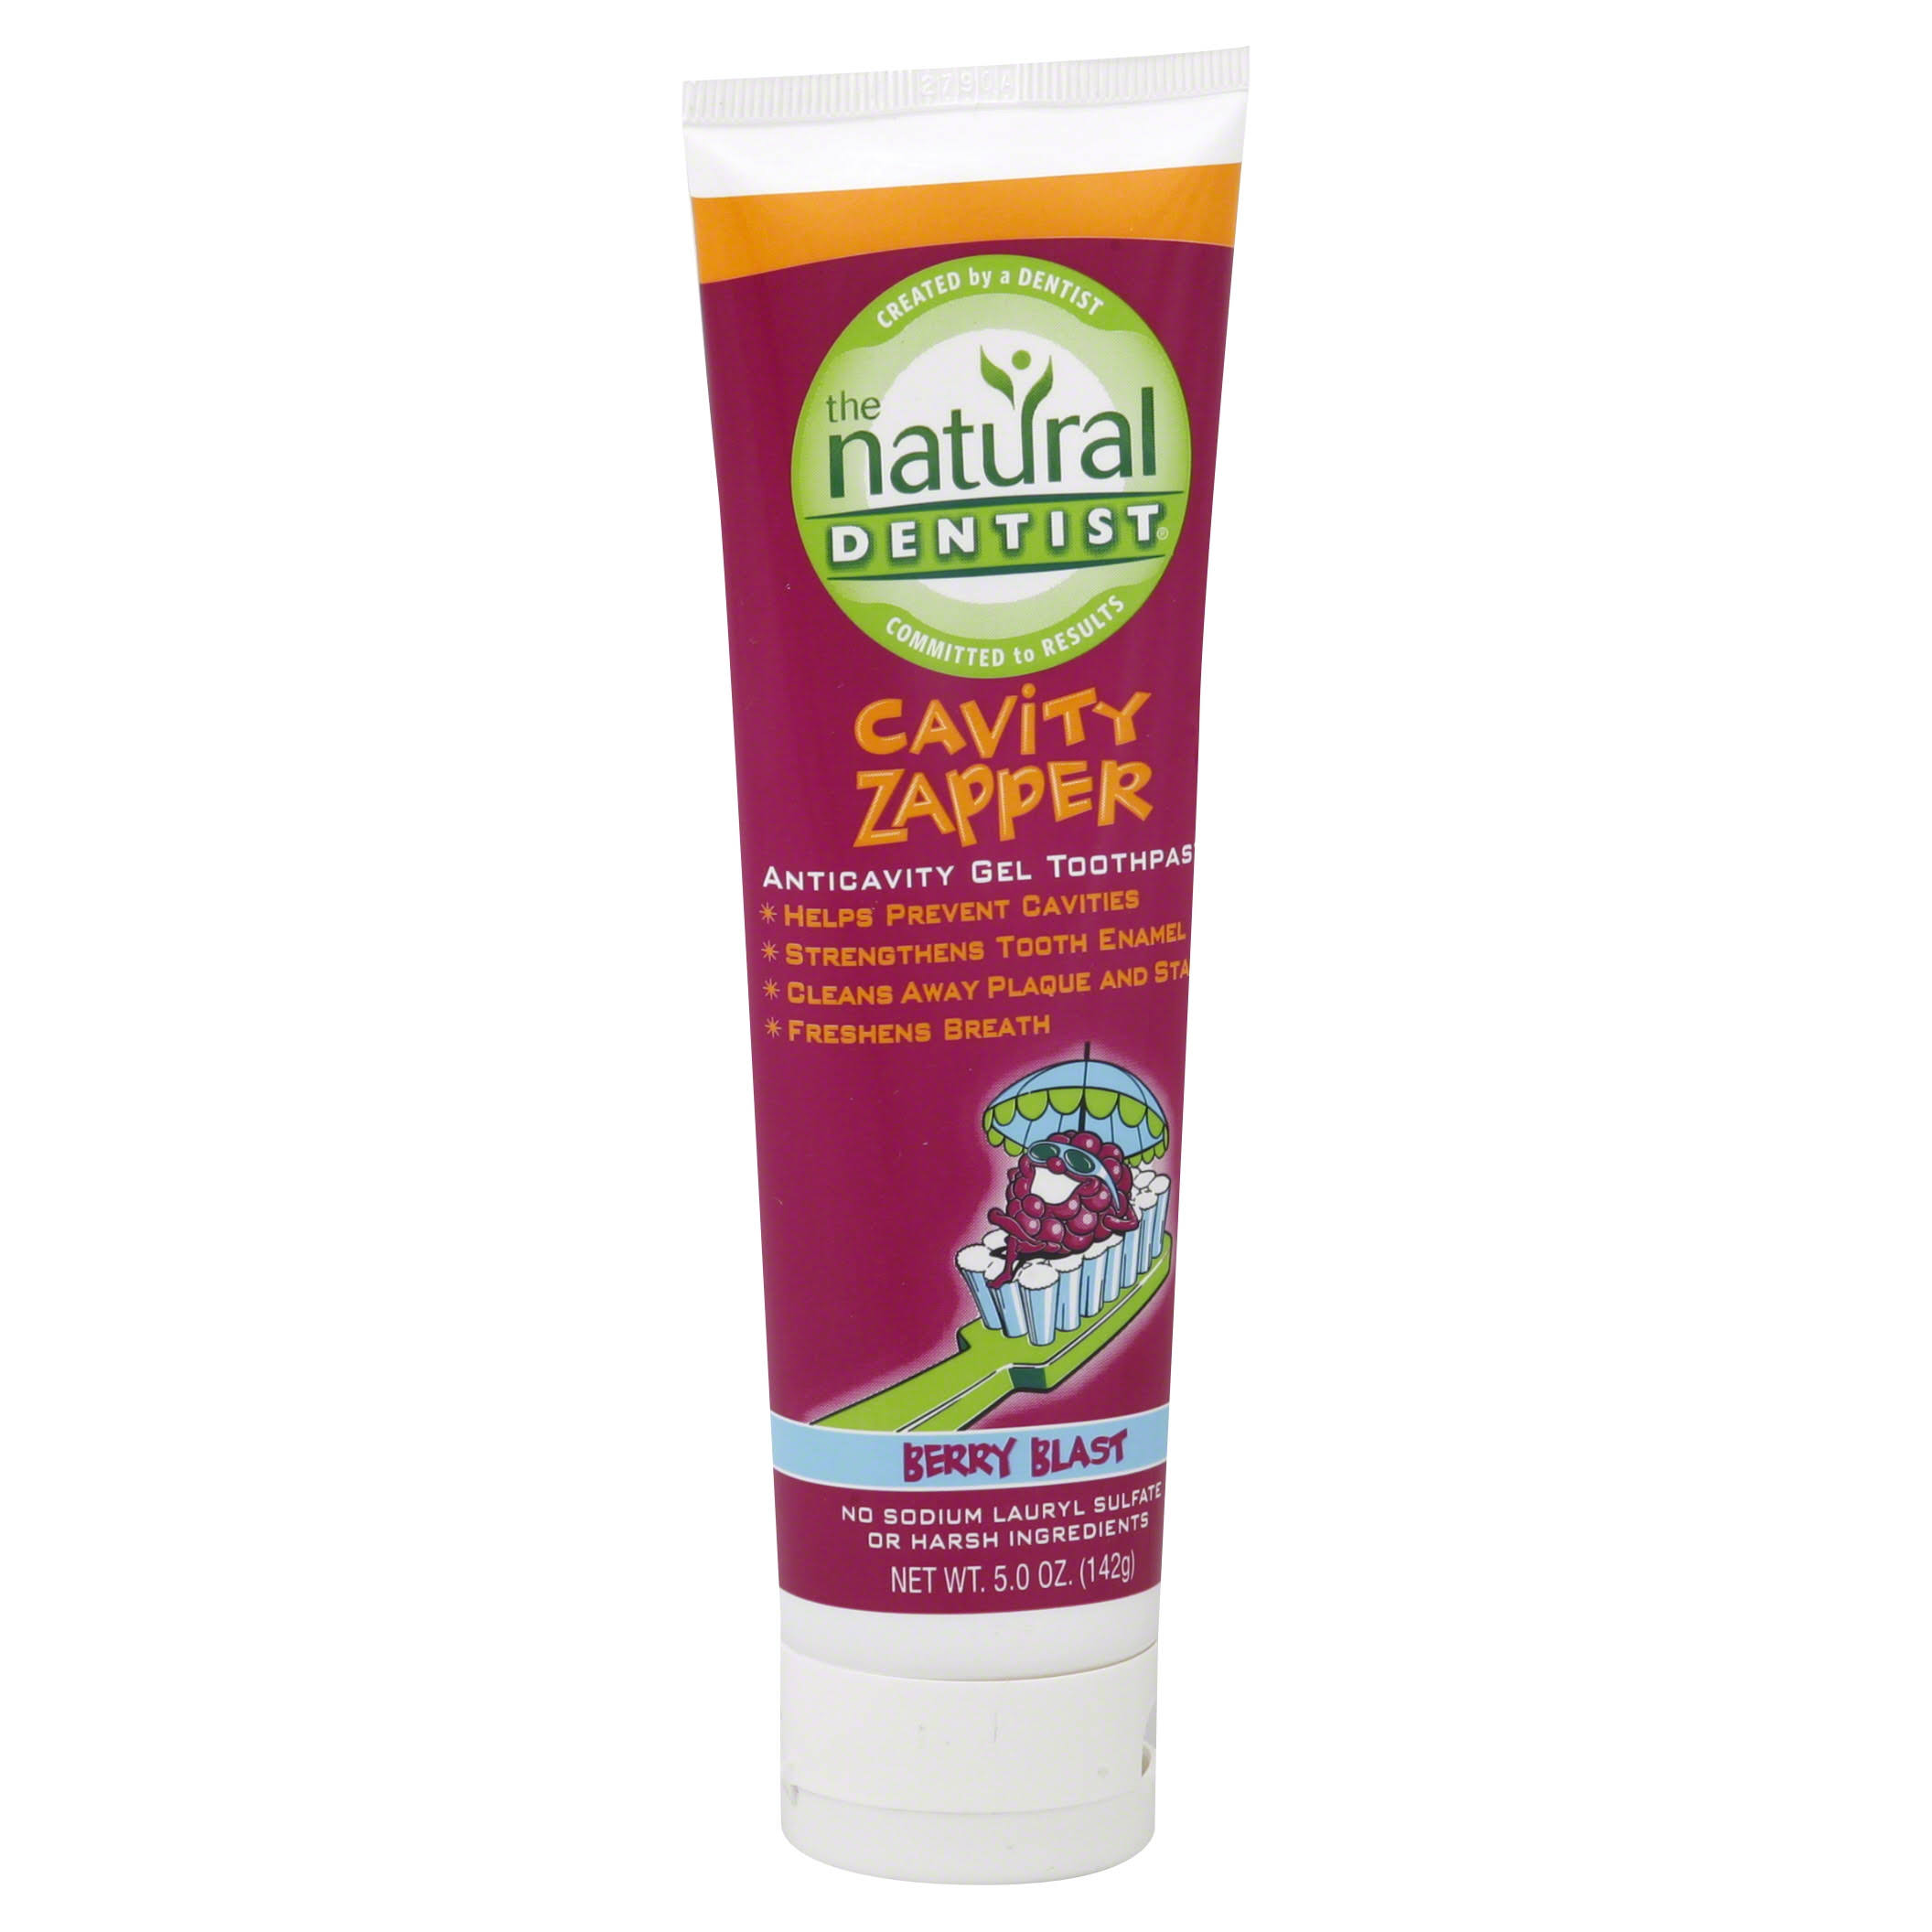 Natural Dentist Cavity Zapper Anticavity Gel Toothpaste - Berry